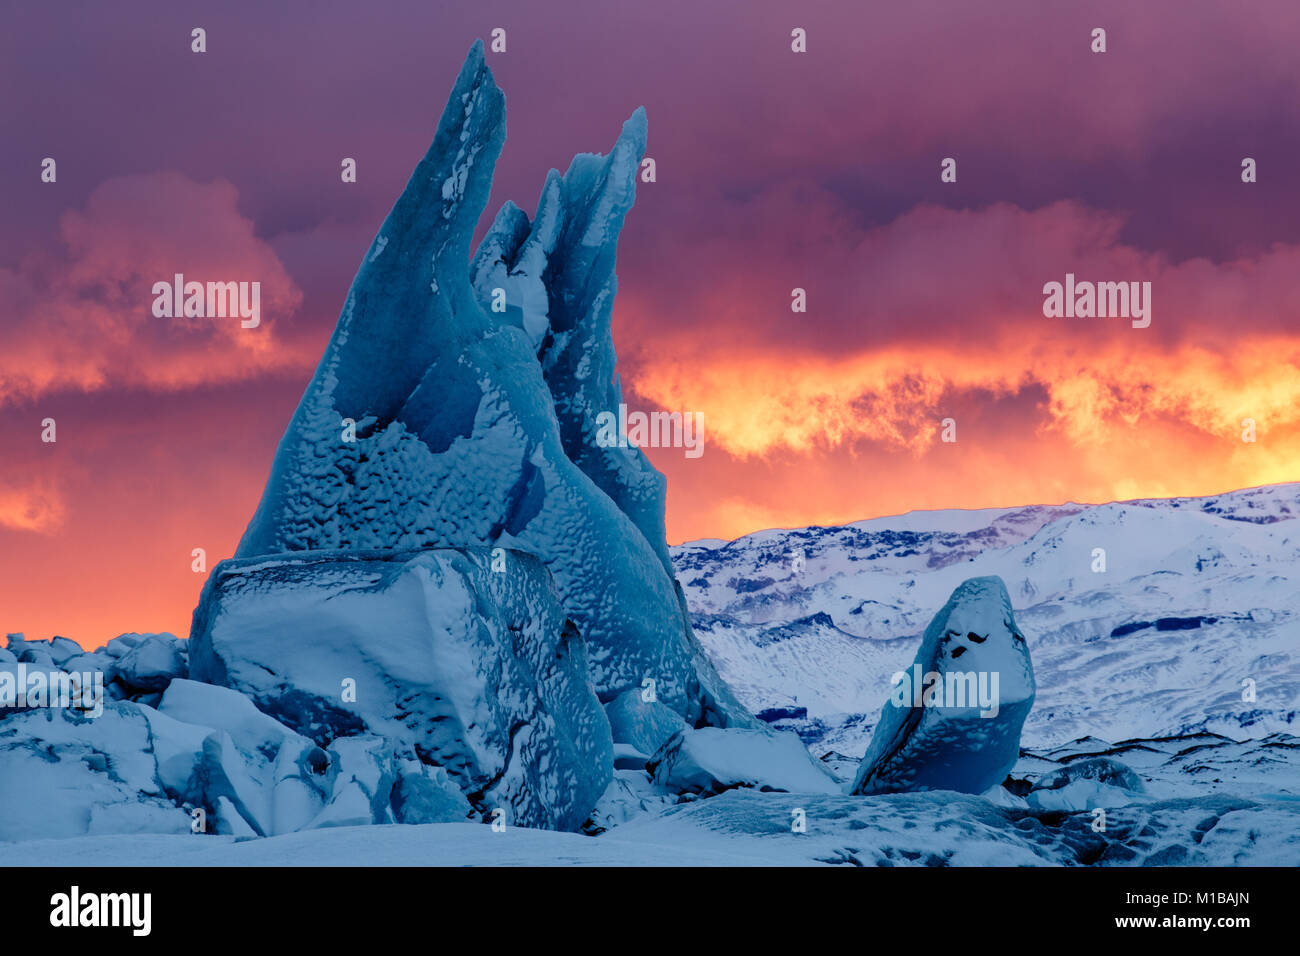 A pointy blue iceberg at sunset at Jokulsarlon Lagoon in South Iceland - Stock Image